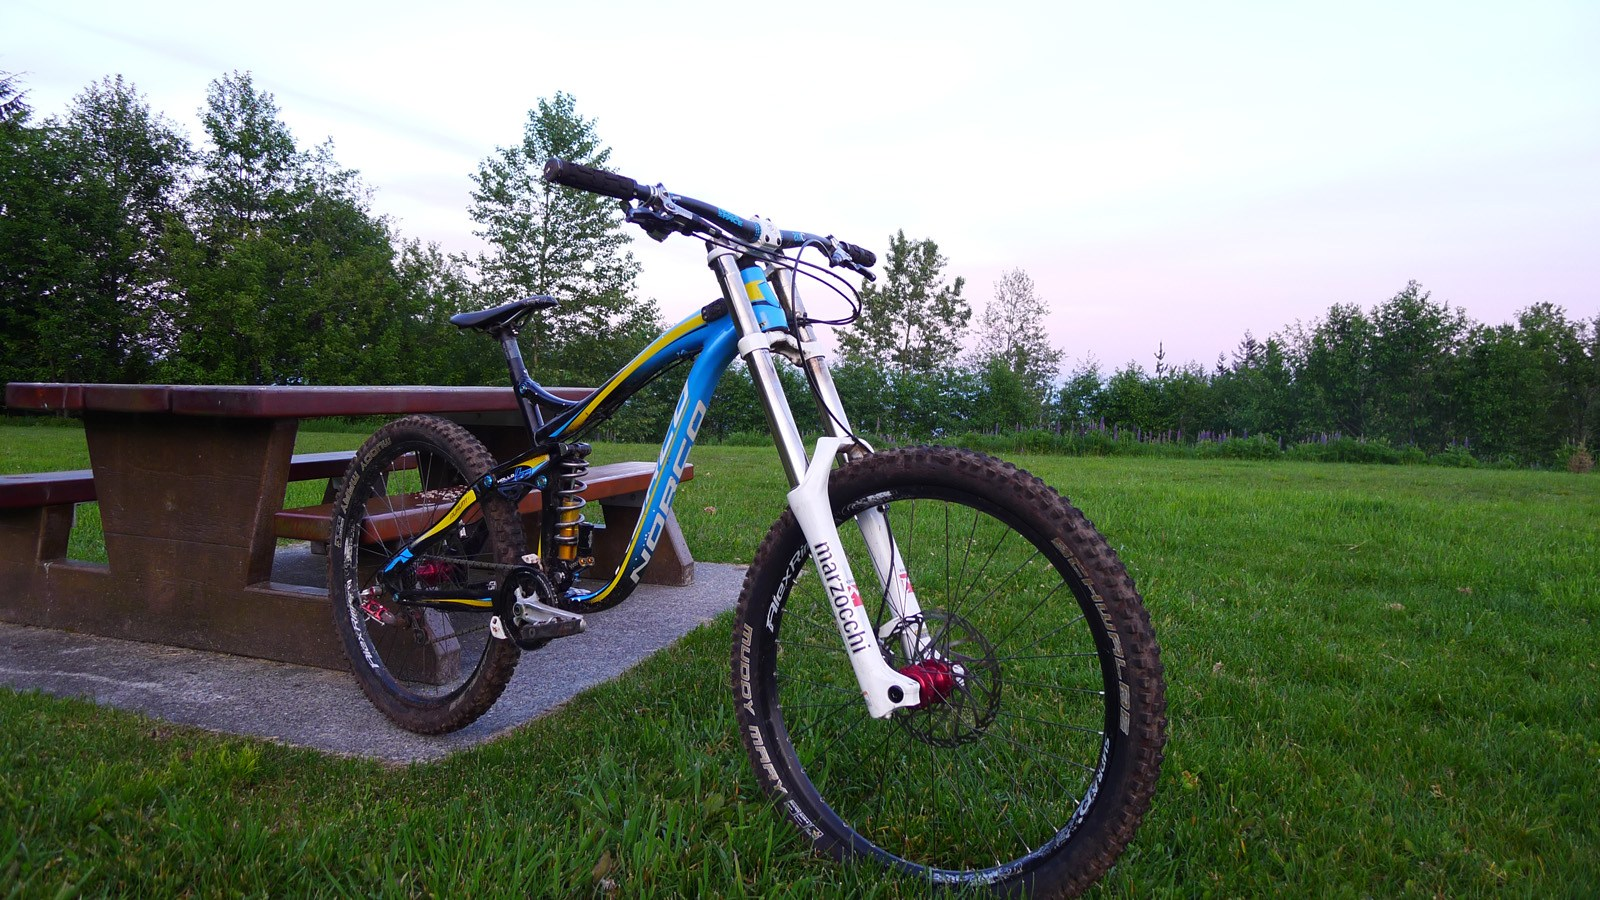 Schwalbe, Muddy Mary, review, gear, tire, tires, 2.35, vertstar, Tim Coleman